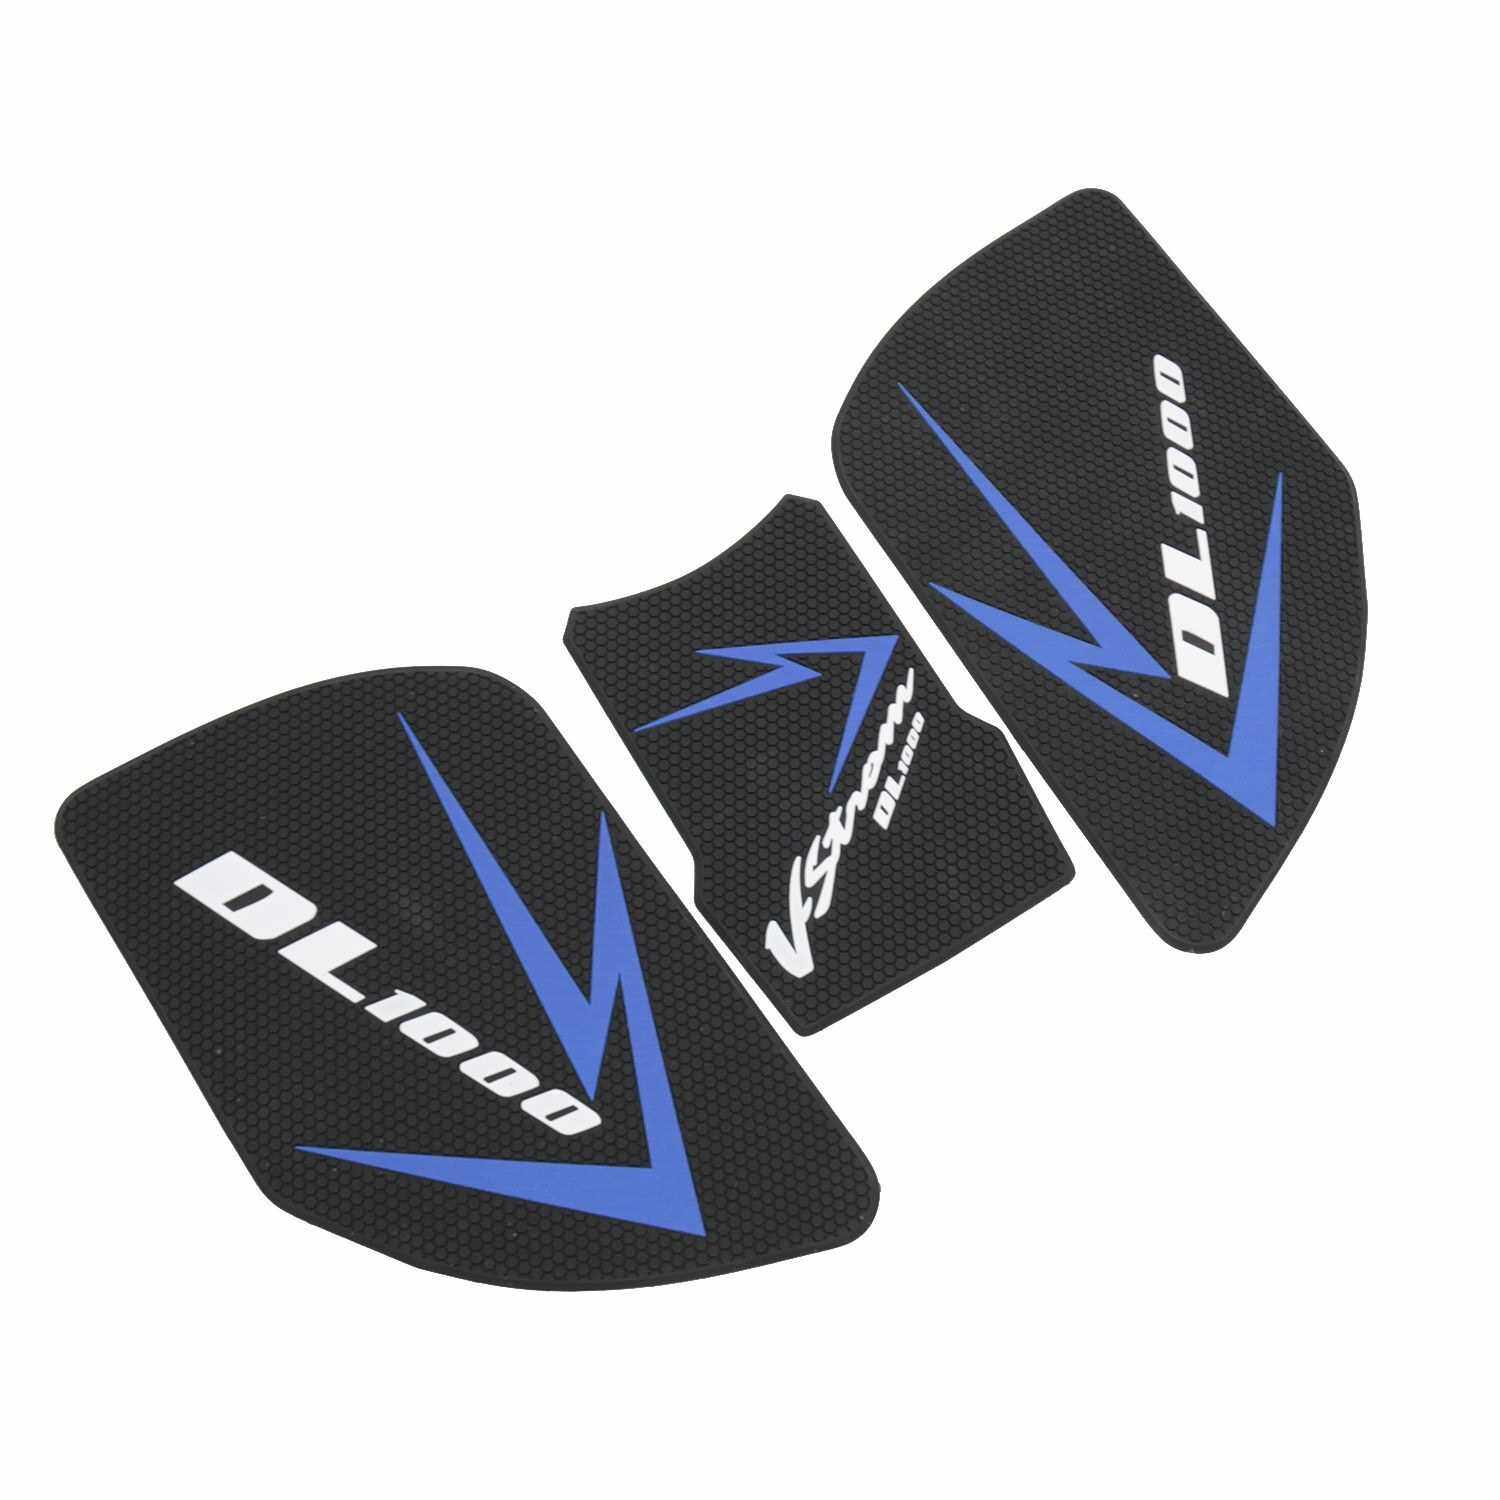 Motorcycle Sticker Gas Fuel Oil Tank Pad Protector Decal replacement for SUZUKI V-STROM DL1000 DL 1000 2017-2019 (Blue)